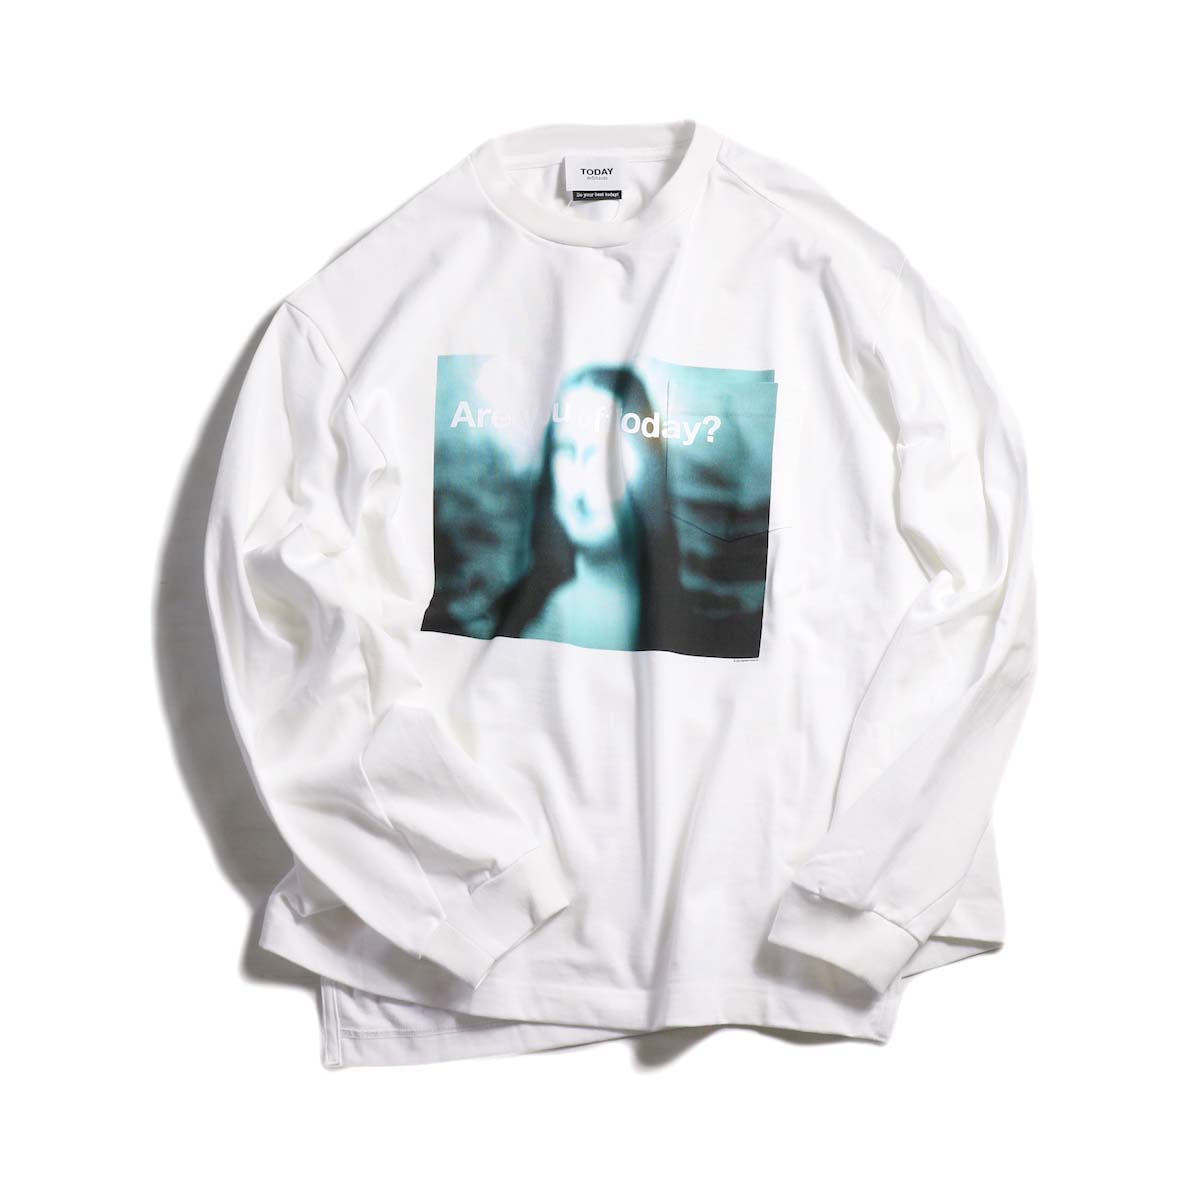 TODAY edition / ARE YOU OFF TODAY? Pocket tee photo #1 -White